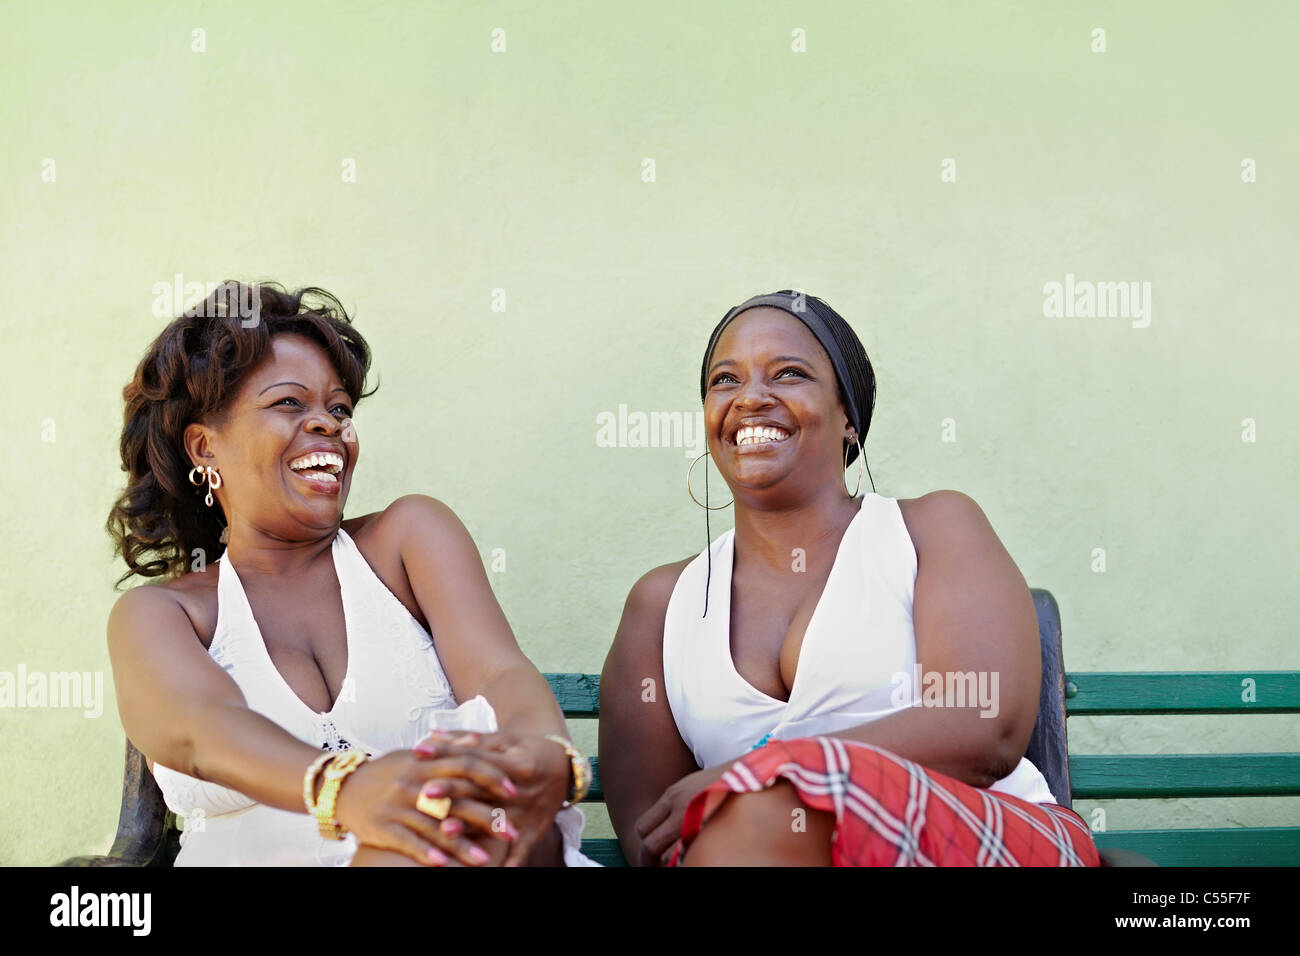 portrait of two happy african adult women talking on bench and smiling. Horizontal shape, copy space Stock Photo